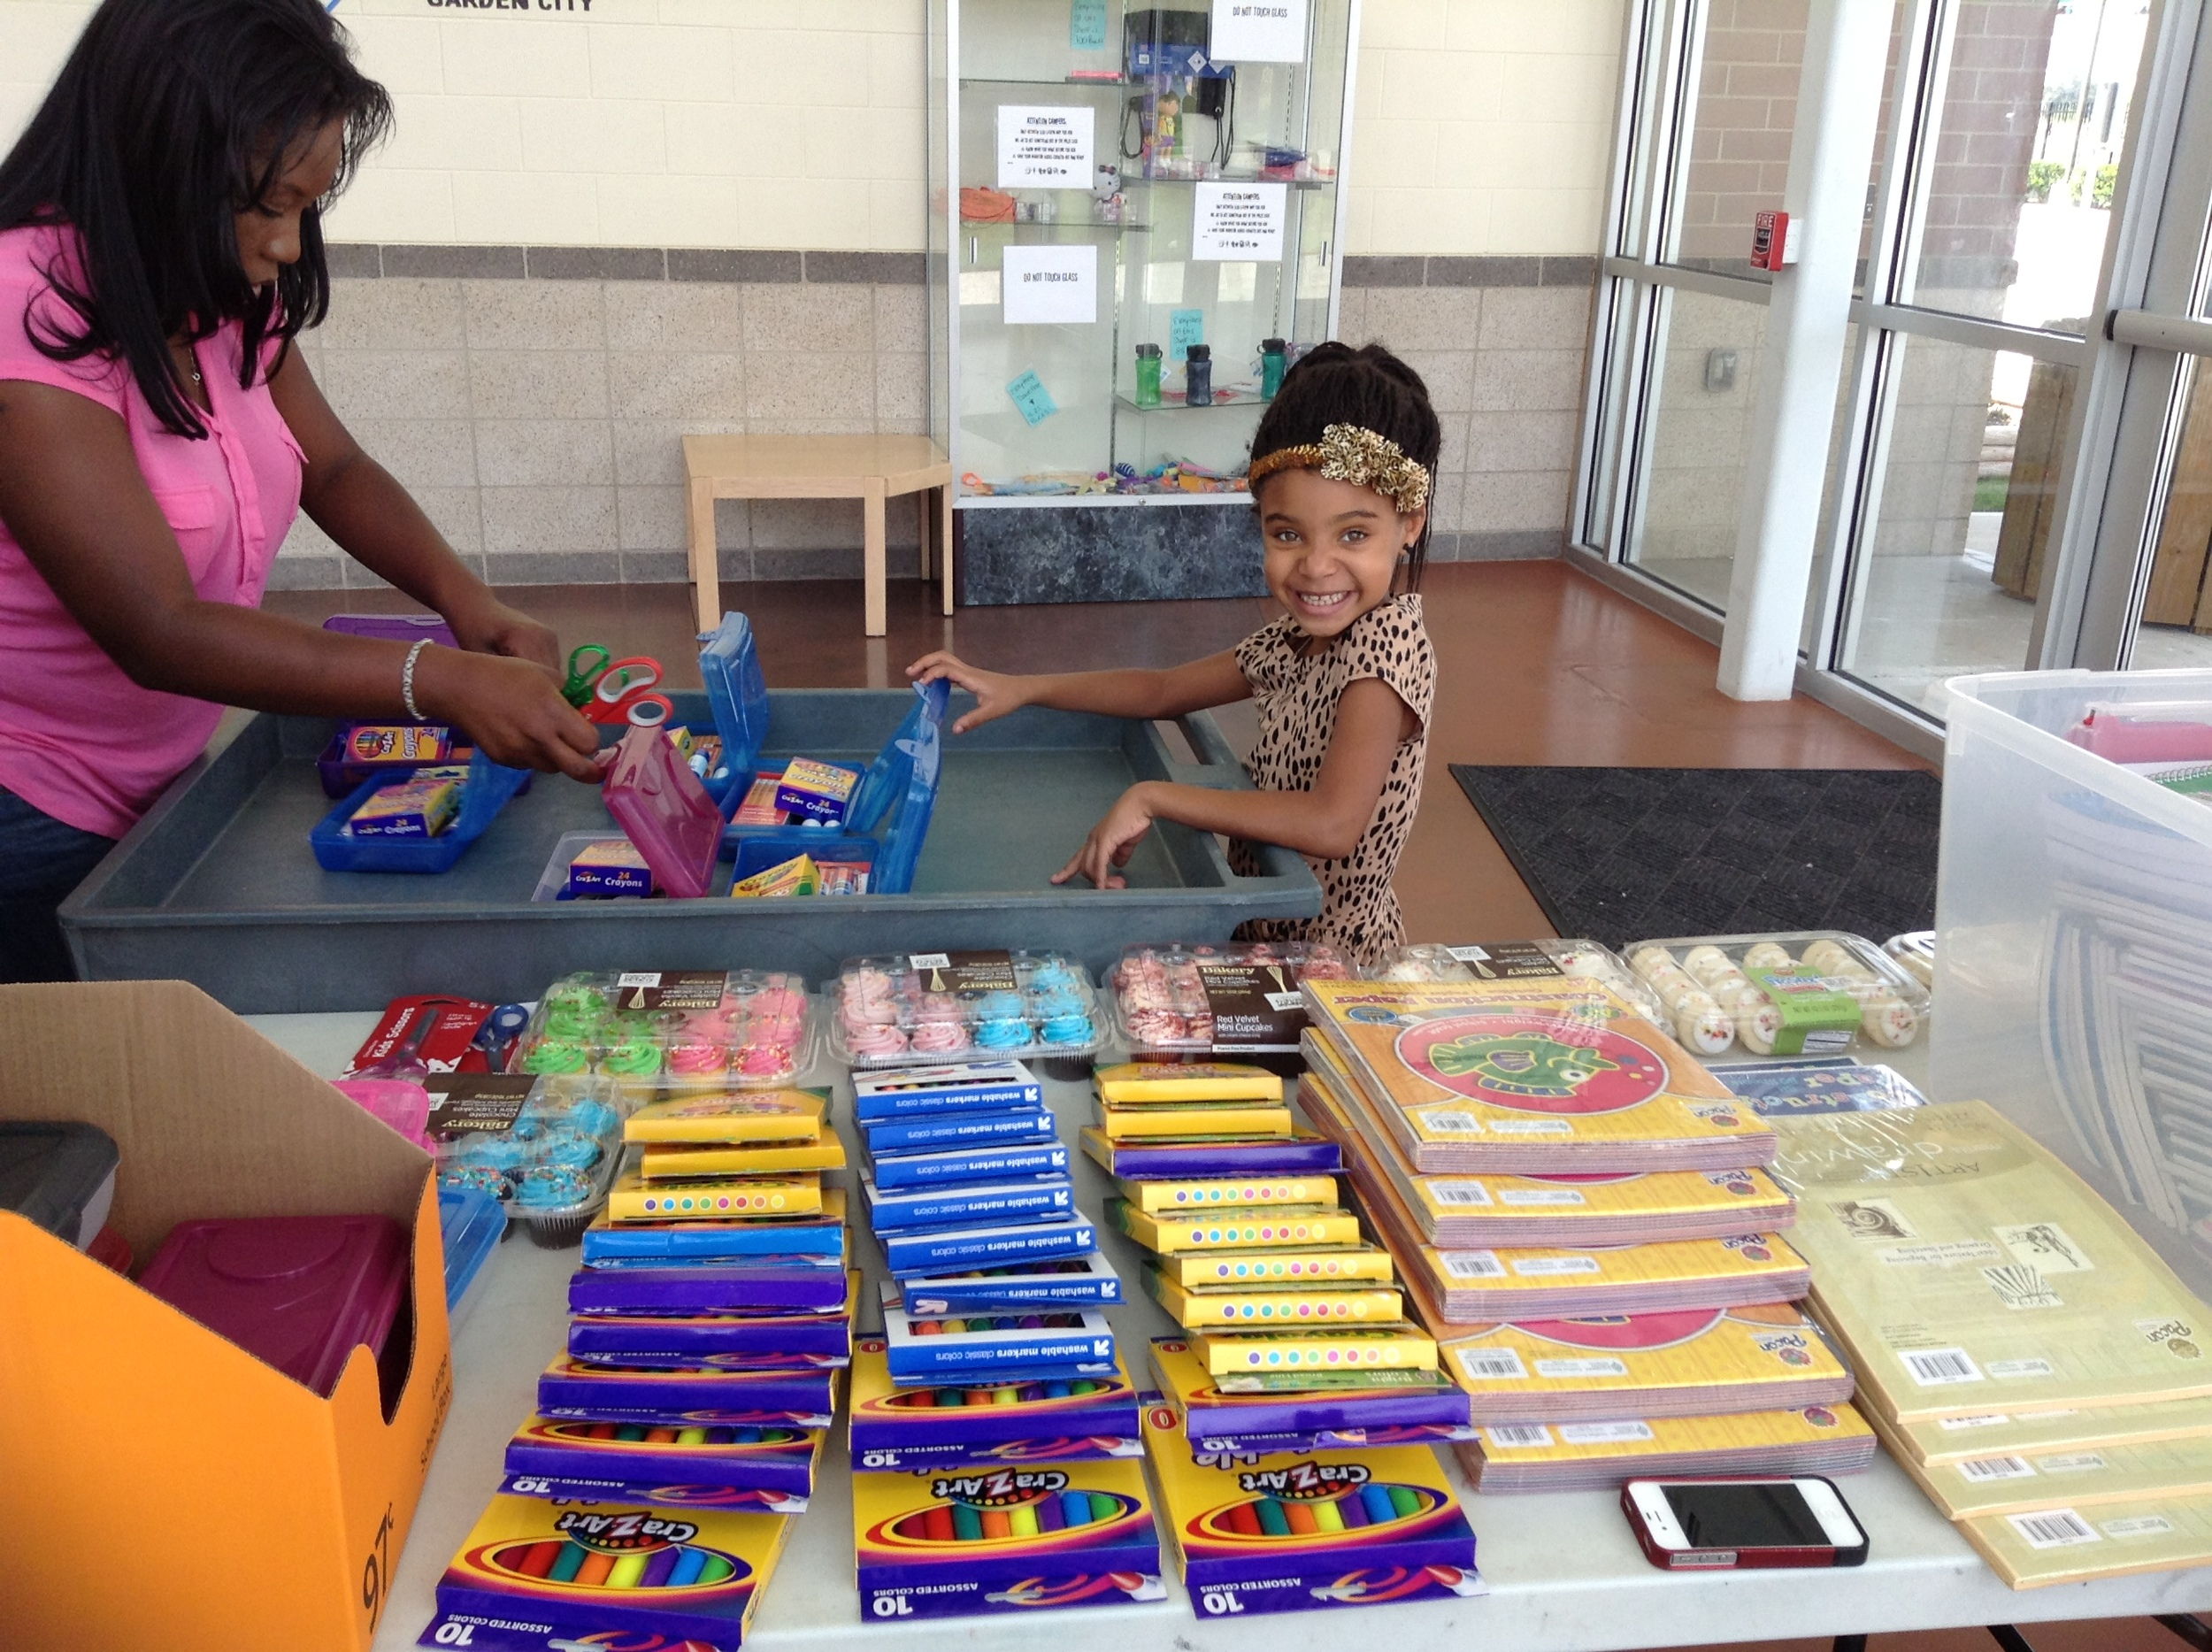 Saniya volunteers with local nonprofit organization, Diamond Footprints, Incorporated to donate school supplies to the children at a local Salvation Army - Boys & Girls Club.